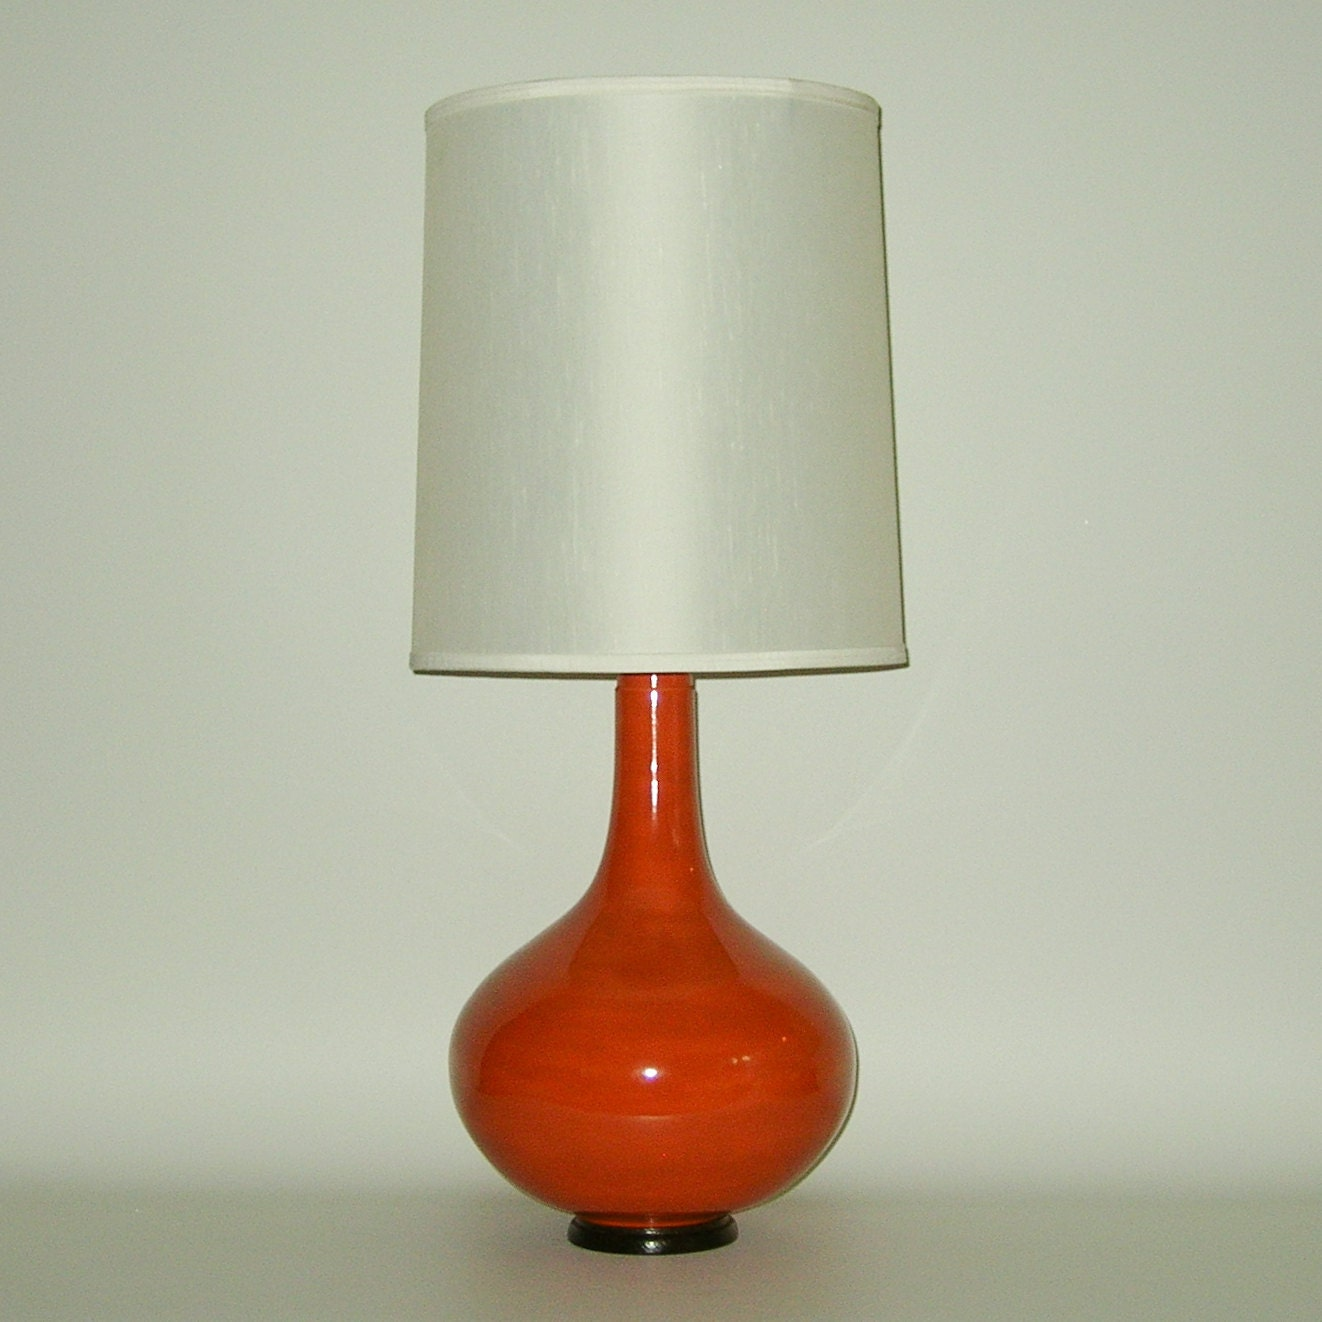 Table Lamp Trends Etsy Finds 6 Big 1970s Mid Century